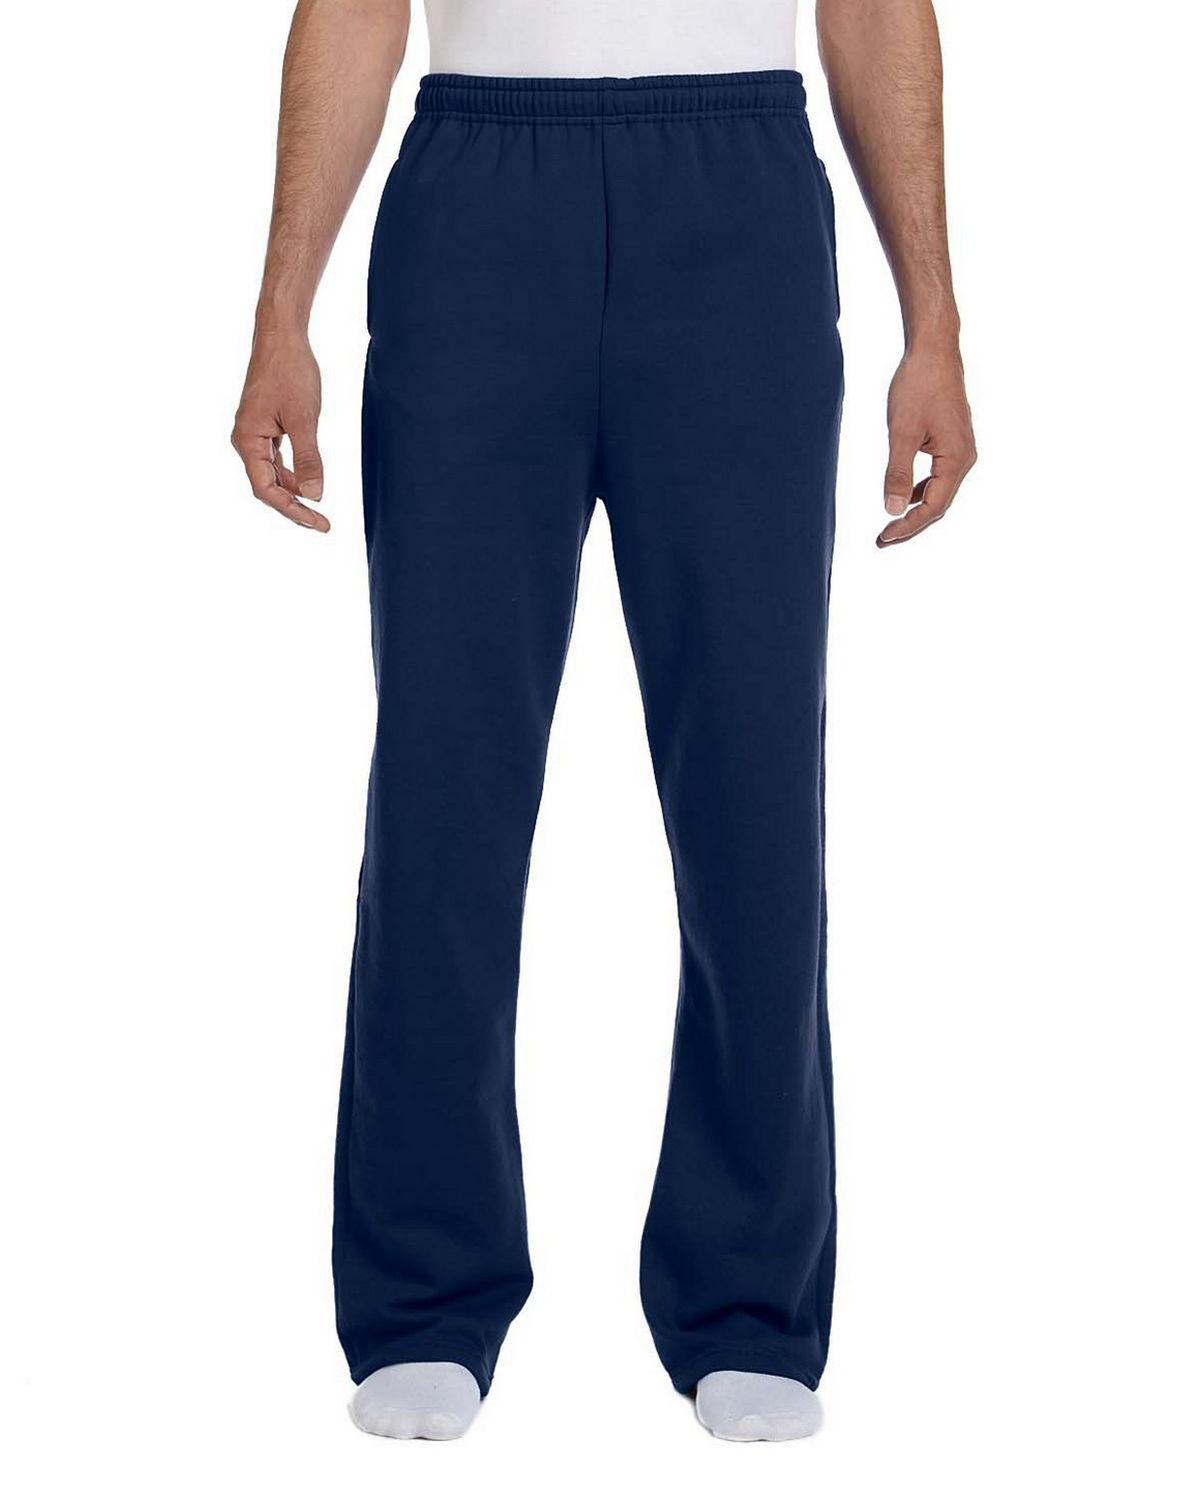 Jerzees 974 Open Bottom Pants - J Navy - M 974